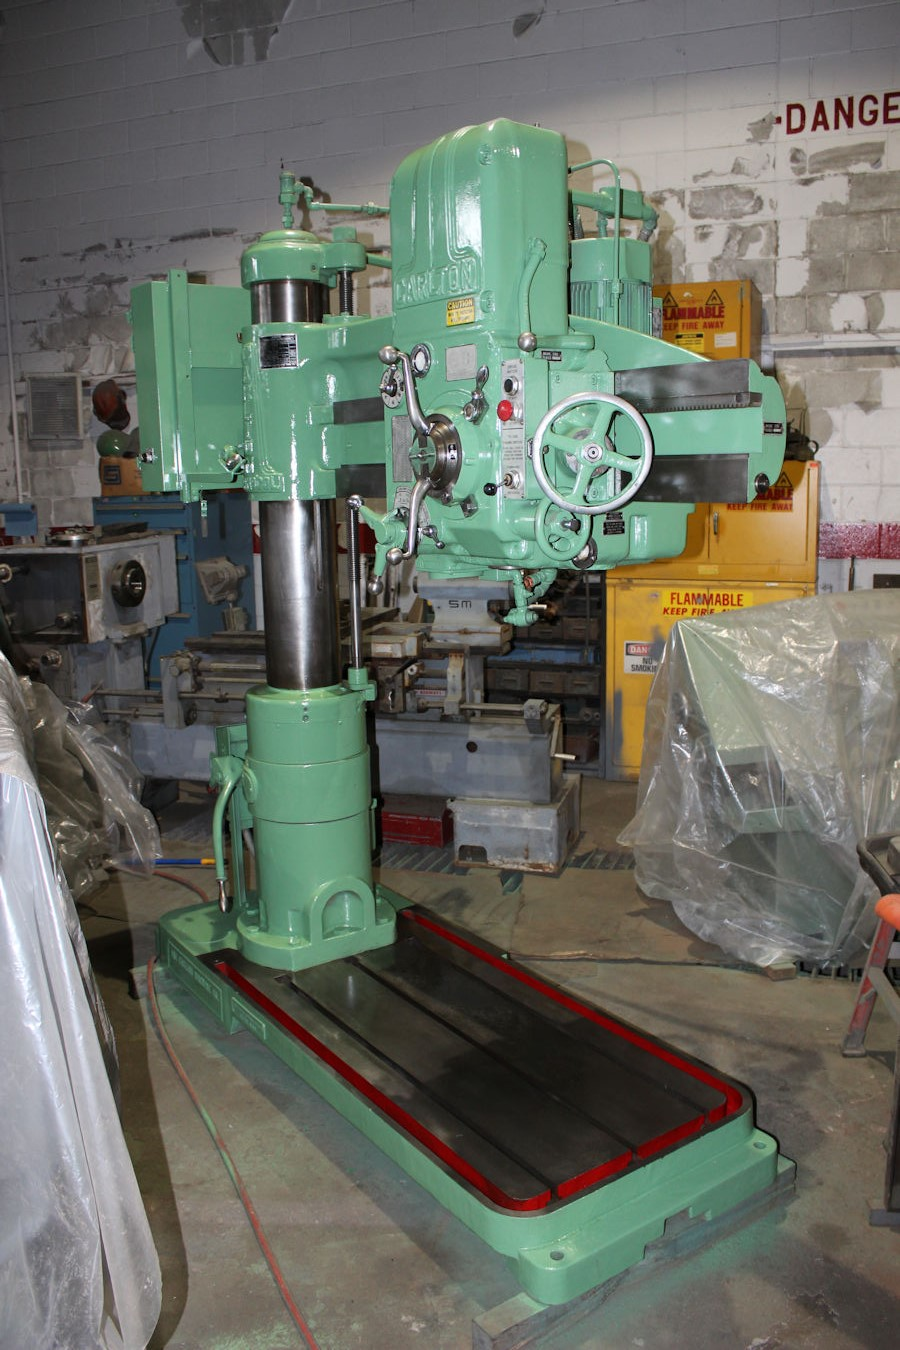 carlton 9 x 4 oa radial arm drill 1 8 to 2 5 capacity 10 to rh ebay com  Biggest Carlton Radial Drill Carlton Radial Arm Drill